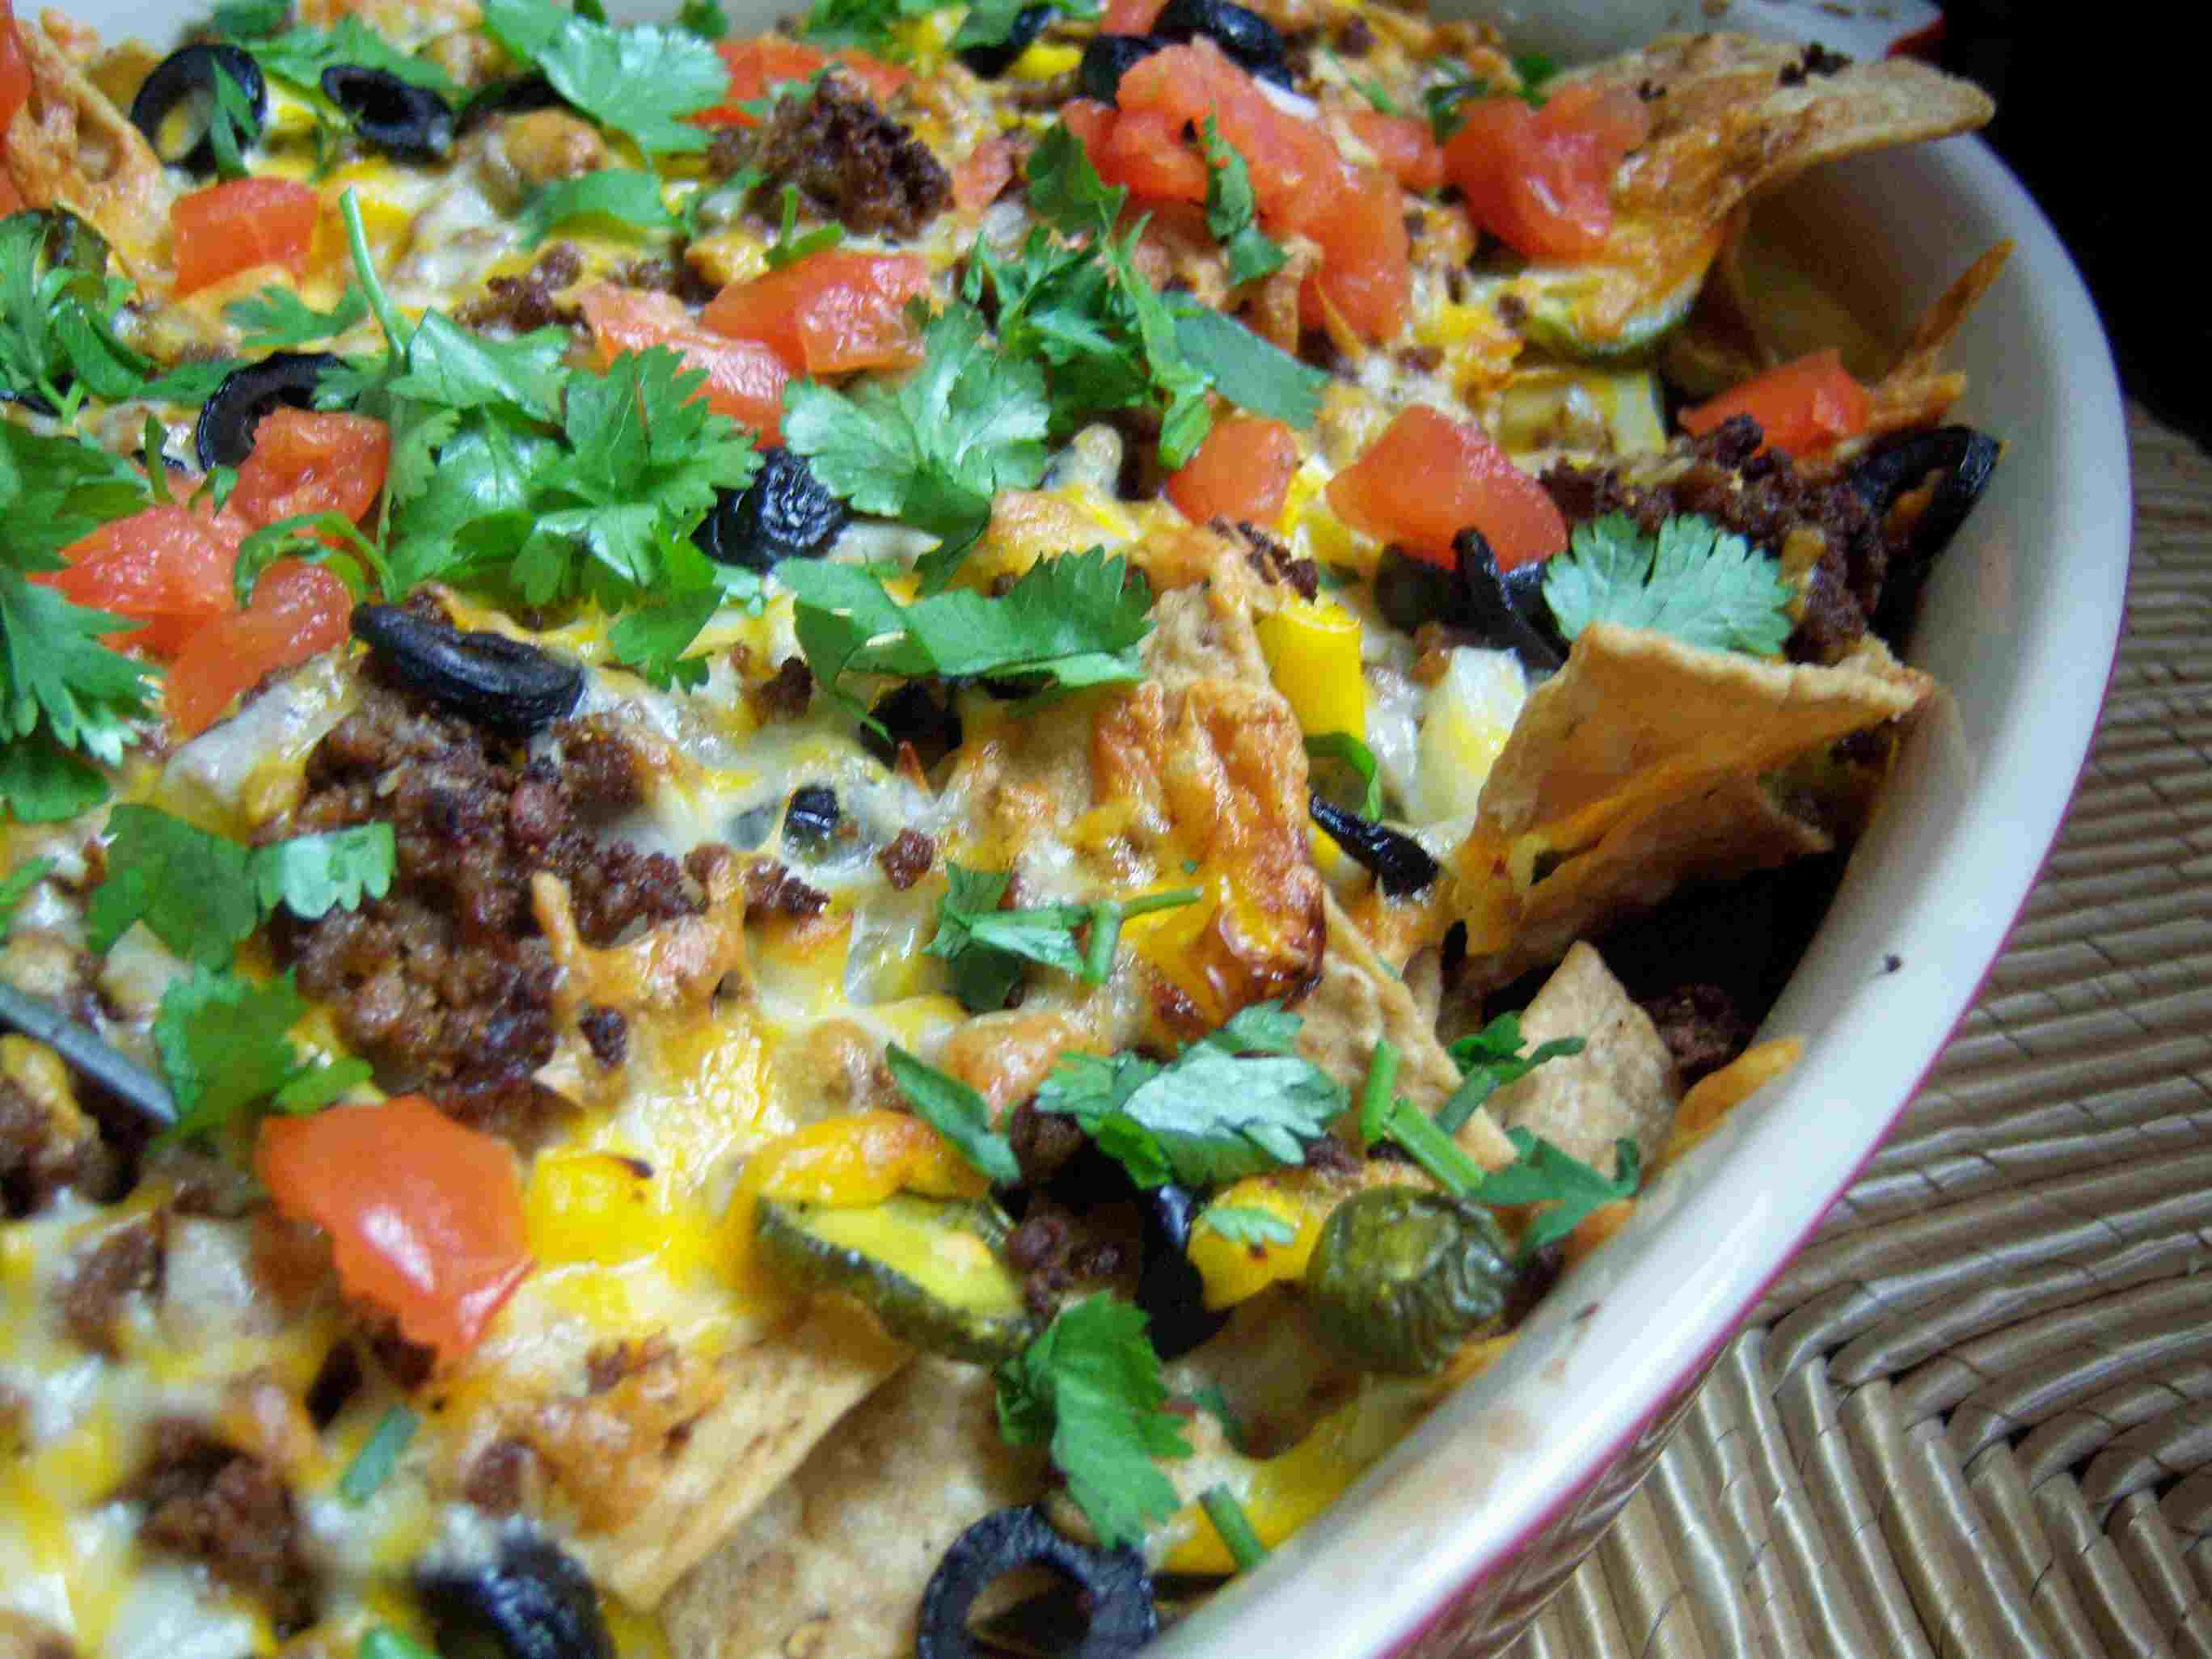 Gluten Free Macho Nacho Recipe and Image Teri Gruss